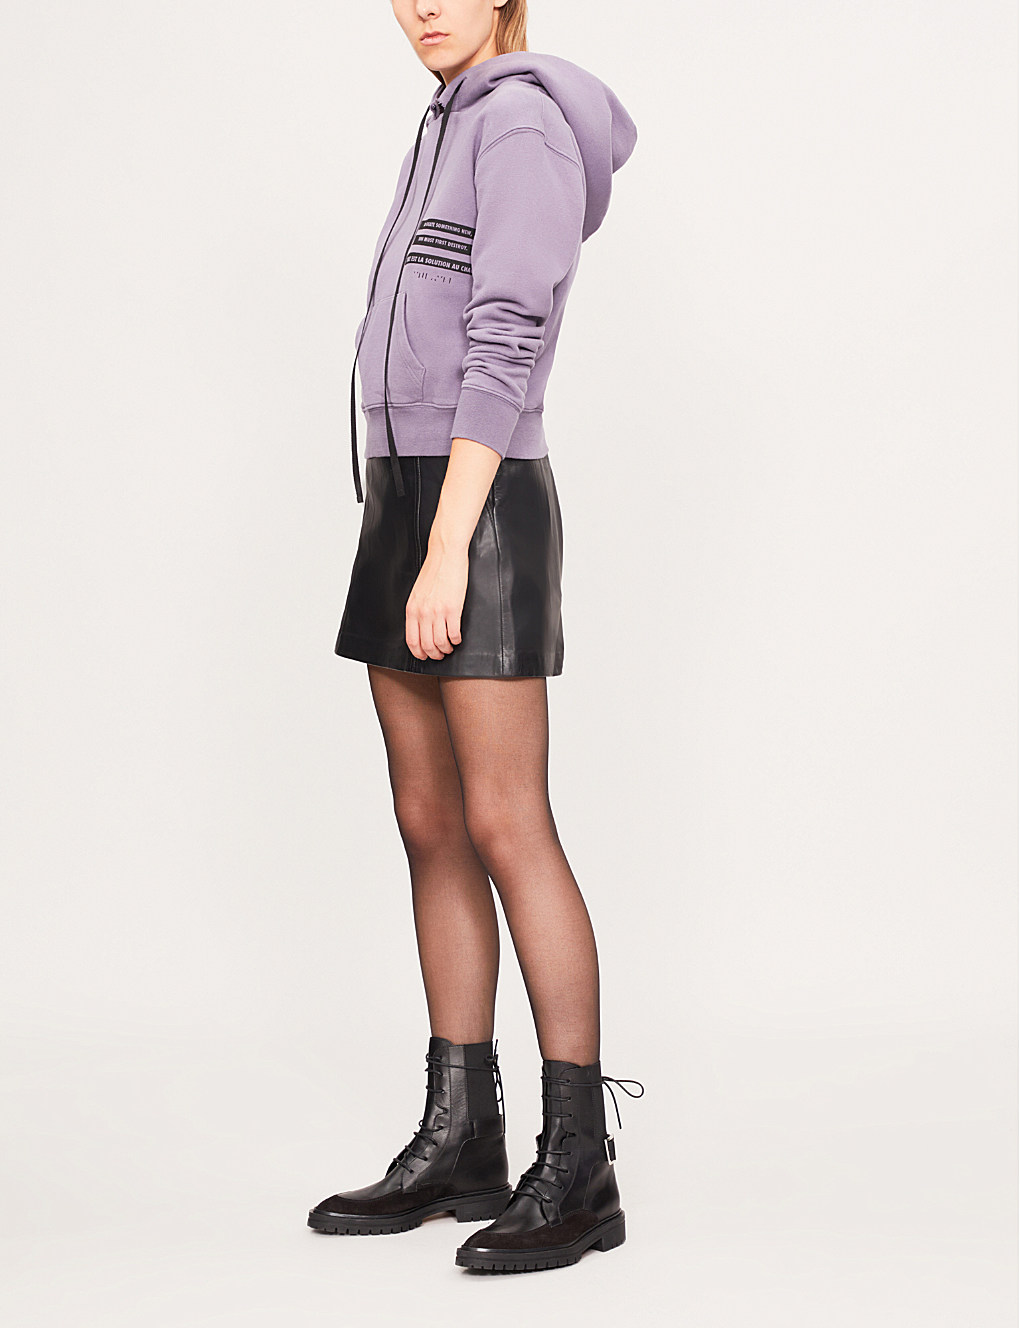 f6a9bac2371e Black Leather Skirt Mini For Womens Genuine Leather | On Sale Buy Now!